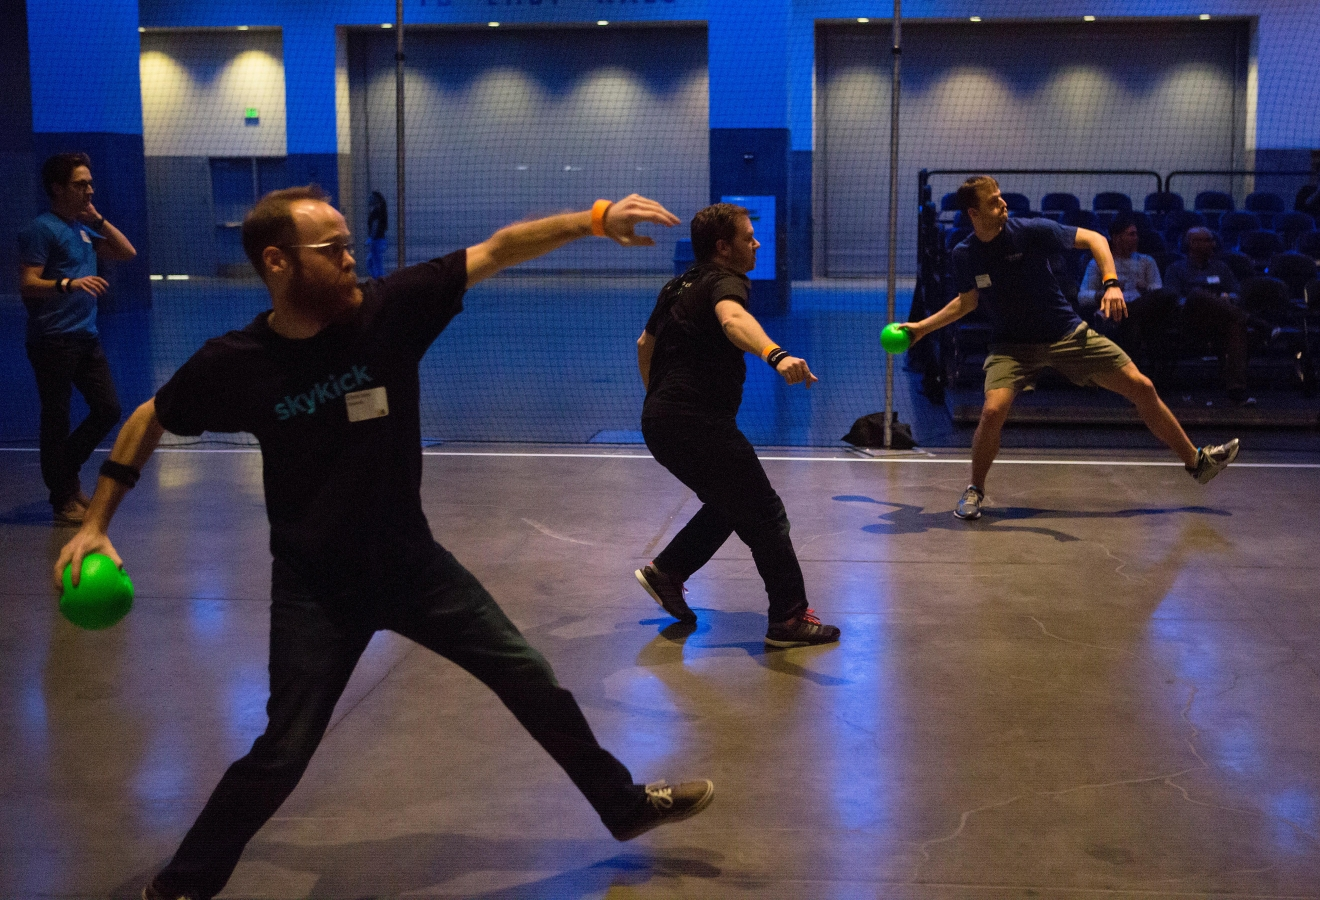 Participants take aim during one of the dodgeball tournaments at the 6th annual Geekwire Bash at the CenturyLink Event Center. (Sy Bean / Seattle Refined)